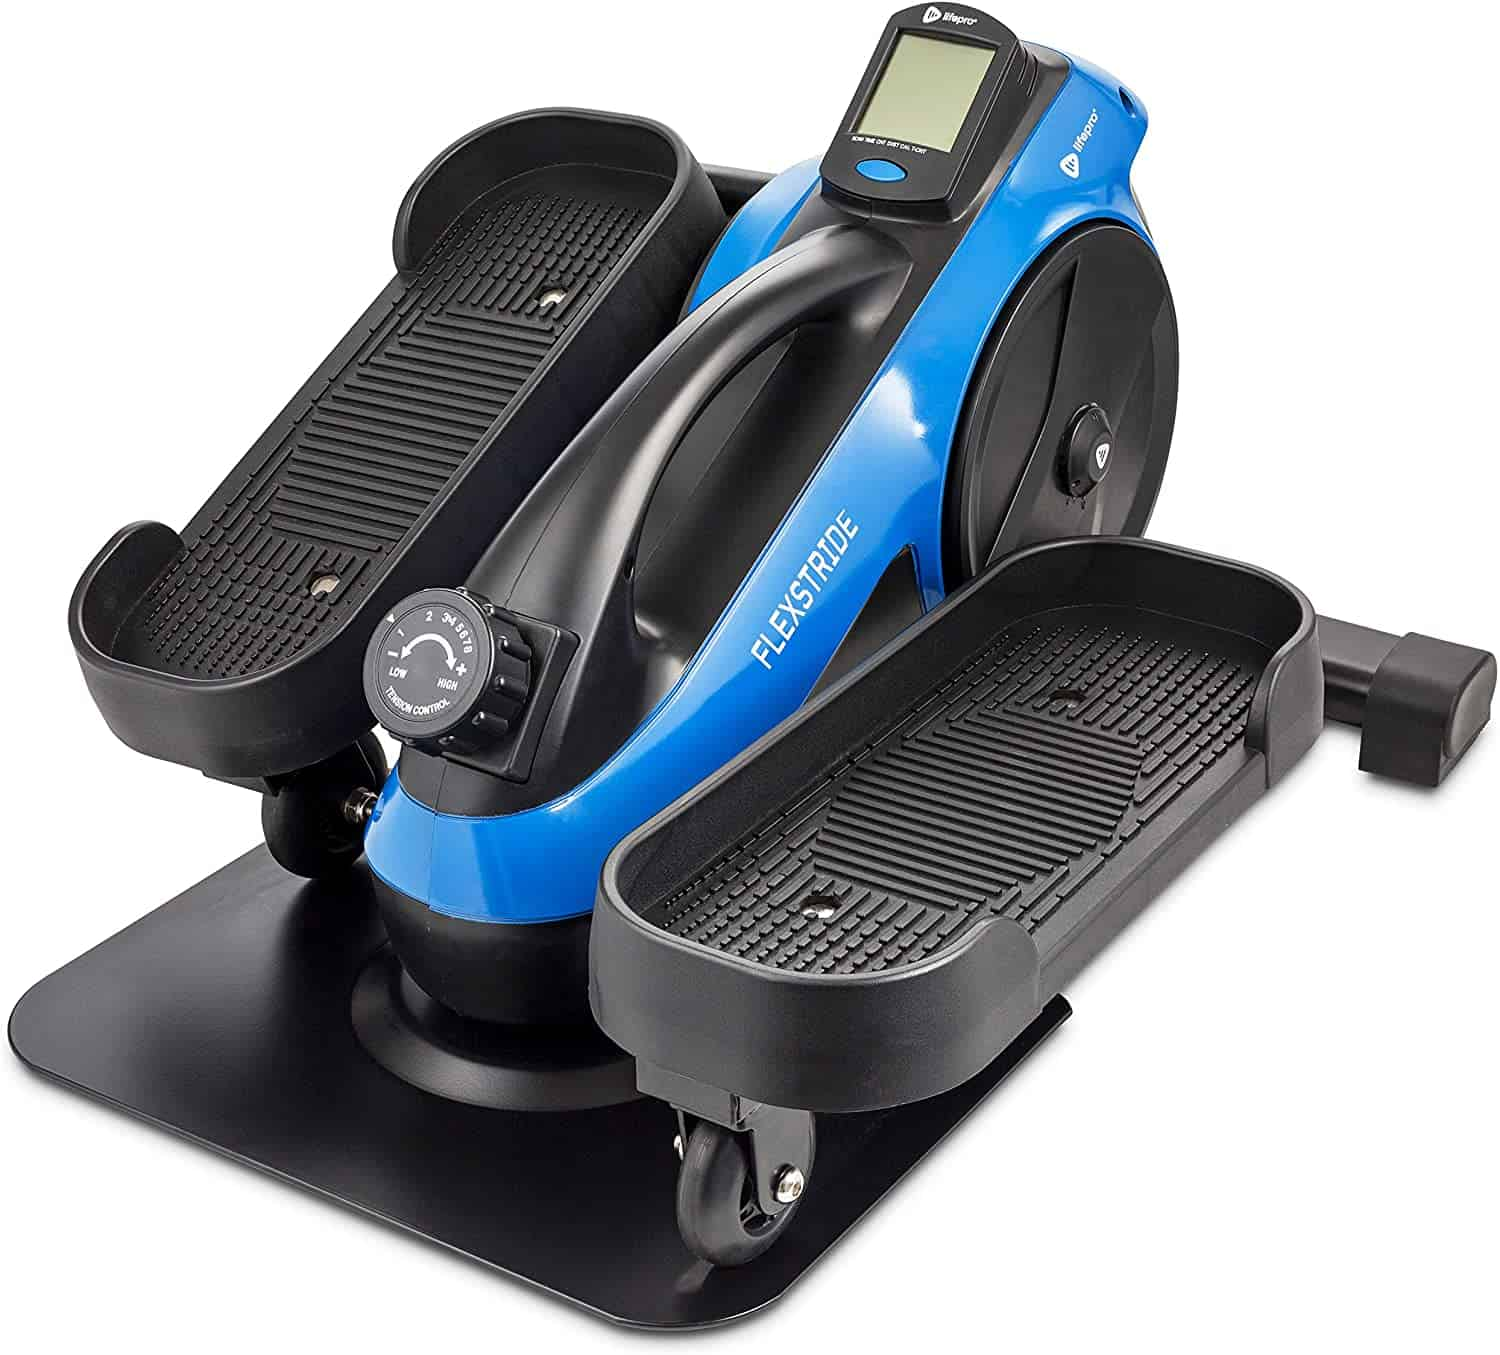 LifePro Under-Desk Elliptical Trainer